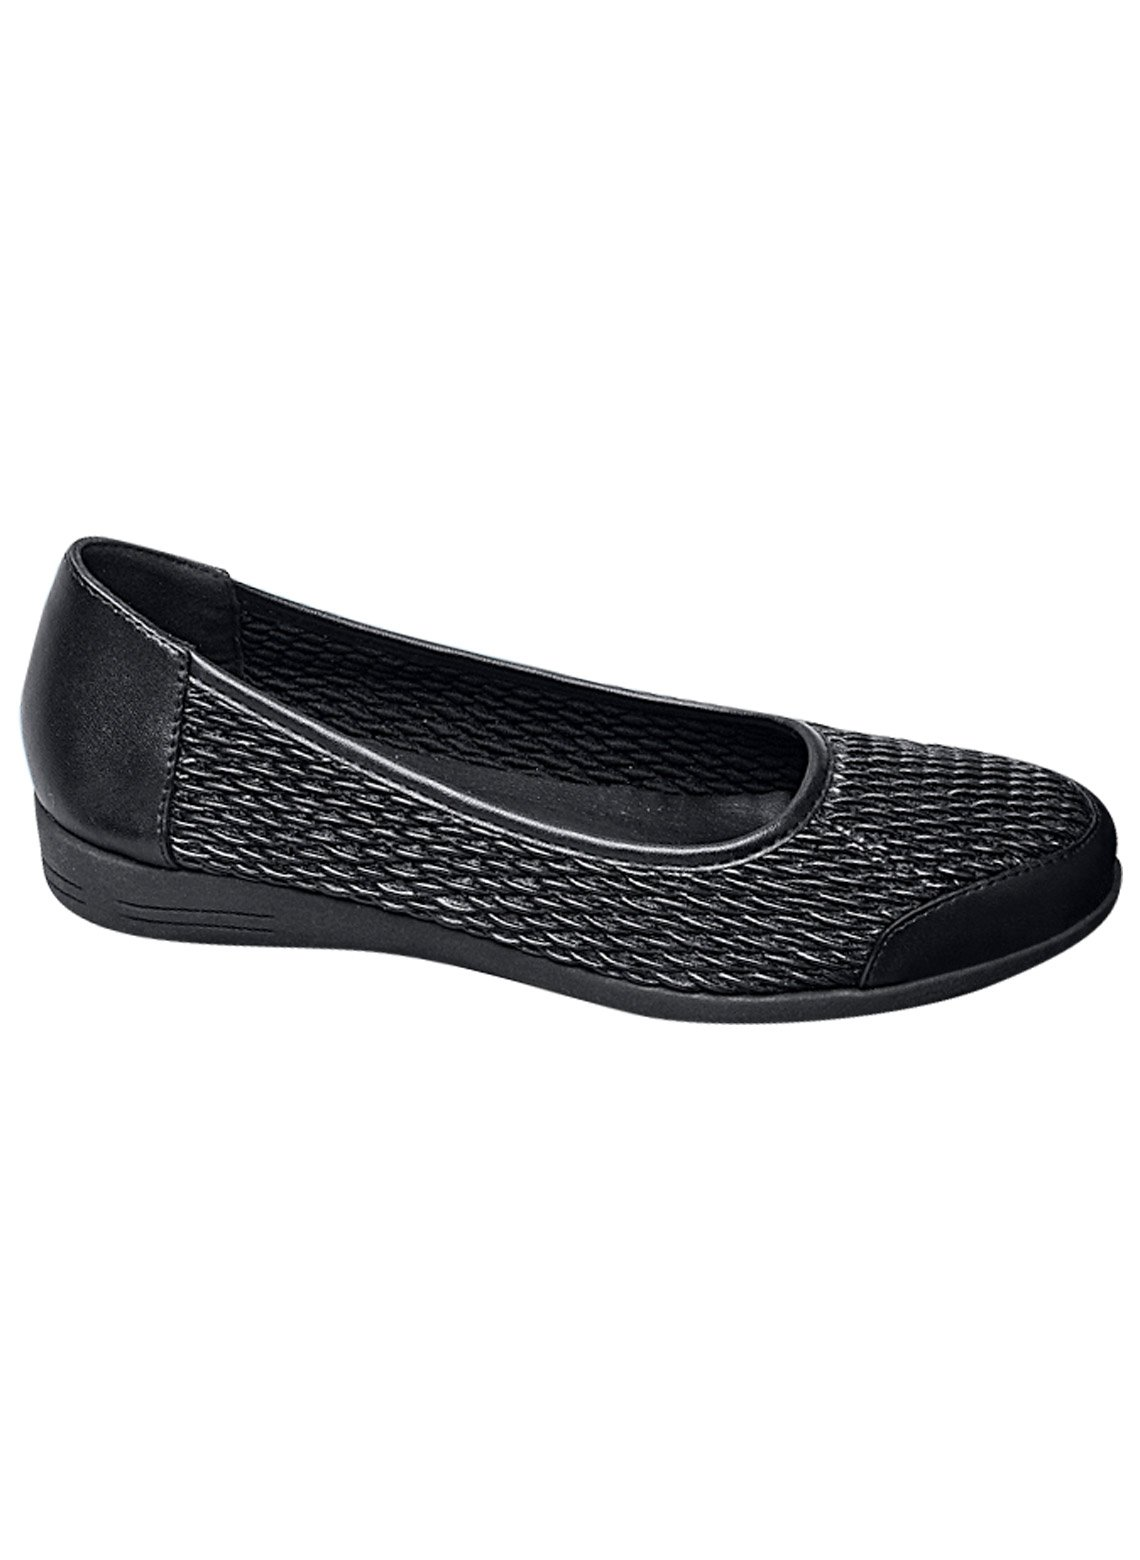 Stretch N Form, Color Black, Size 8 (Wide), Black, Size 8 (Wide)